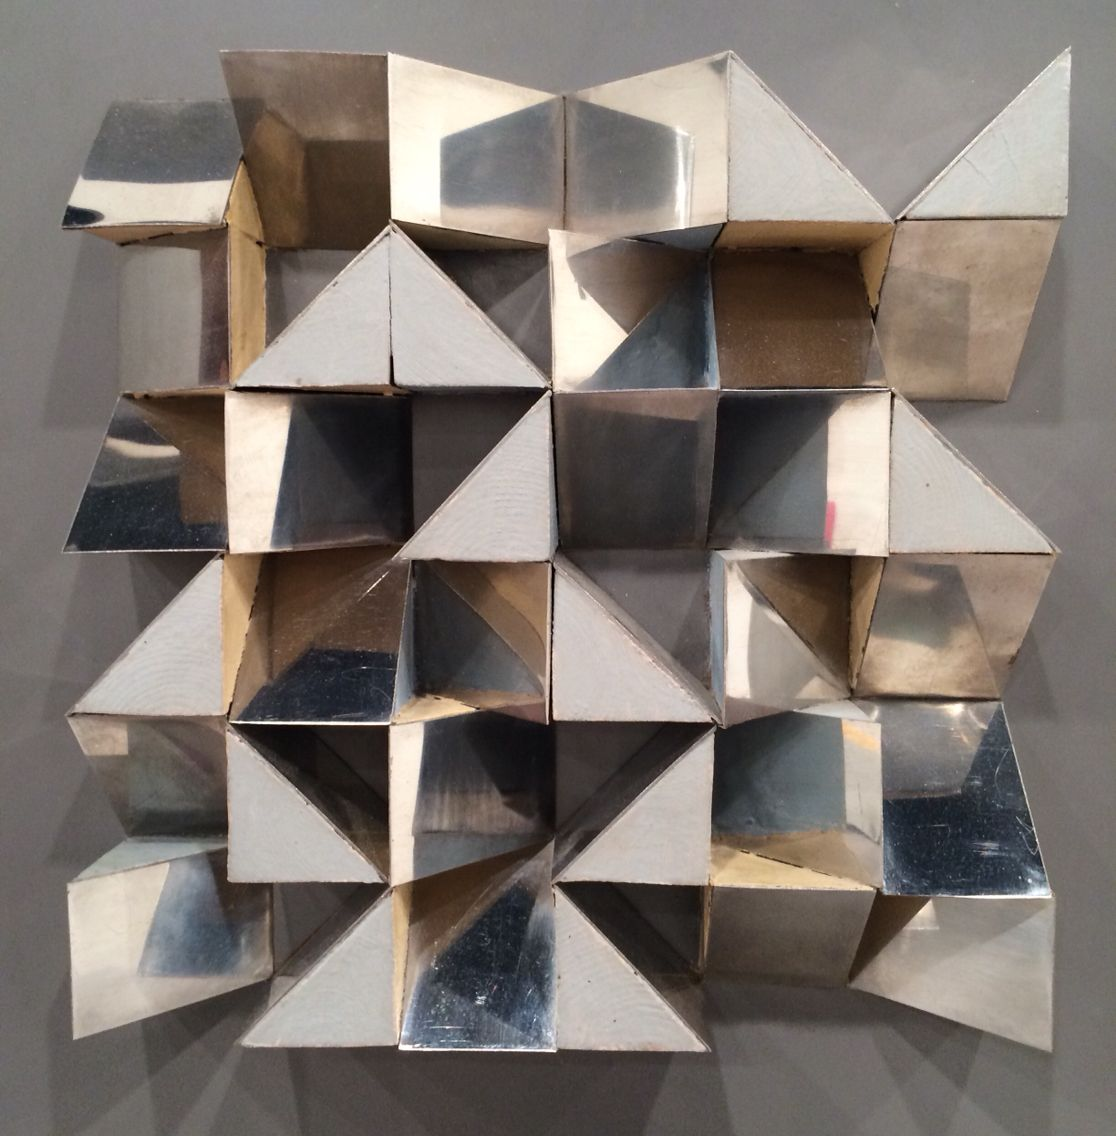 Furniture For Less Miami: Metal Sculpture At Art Basel Miami 2015